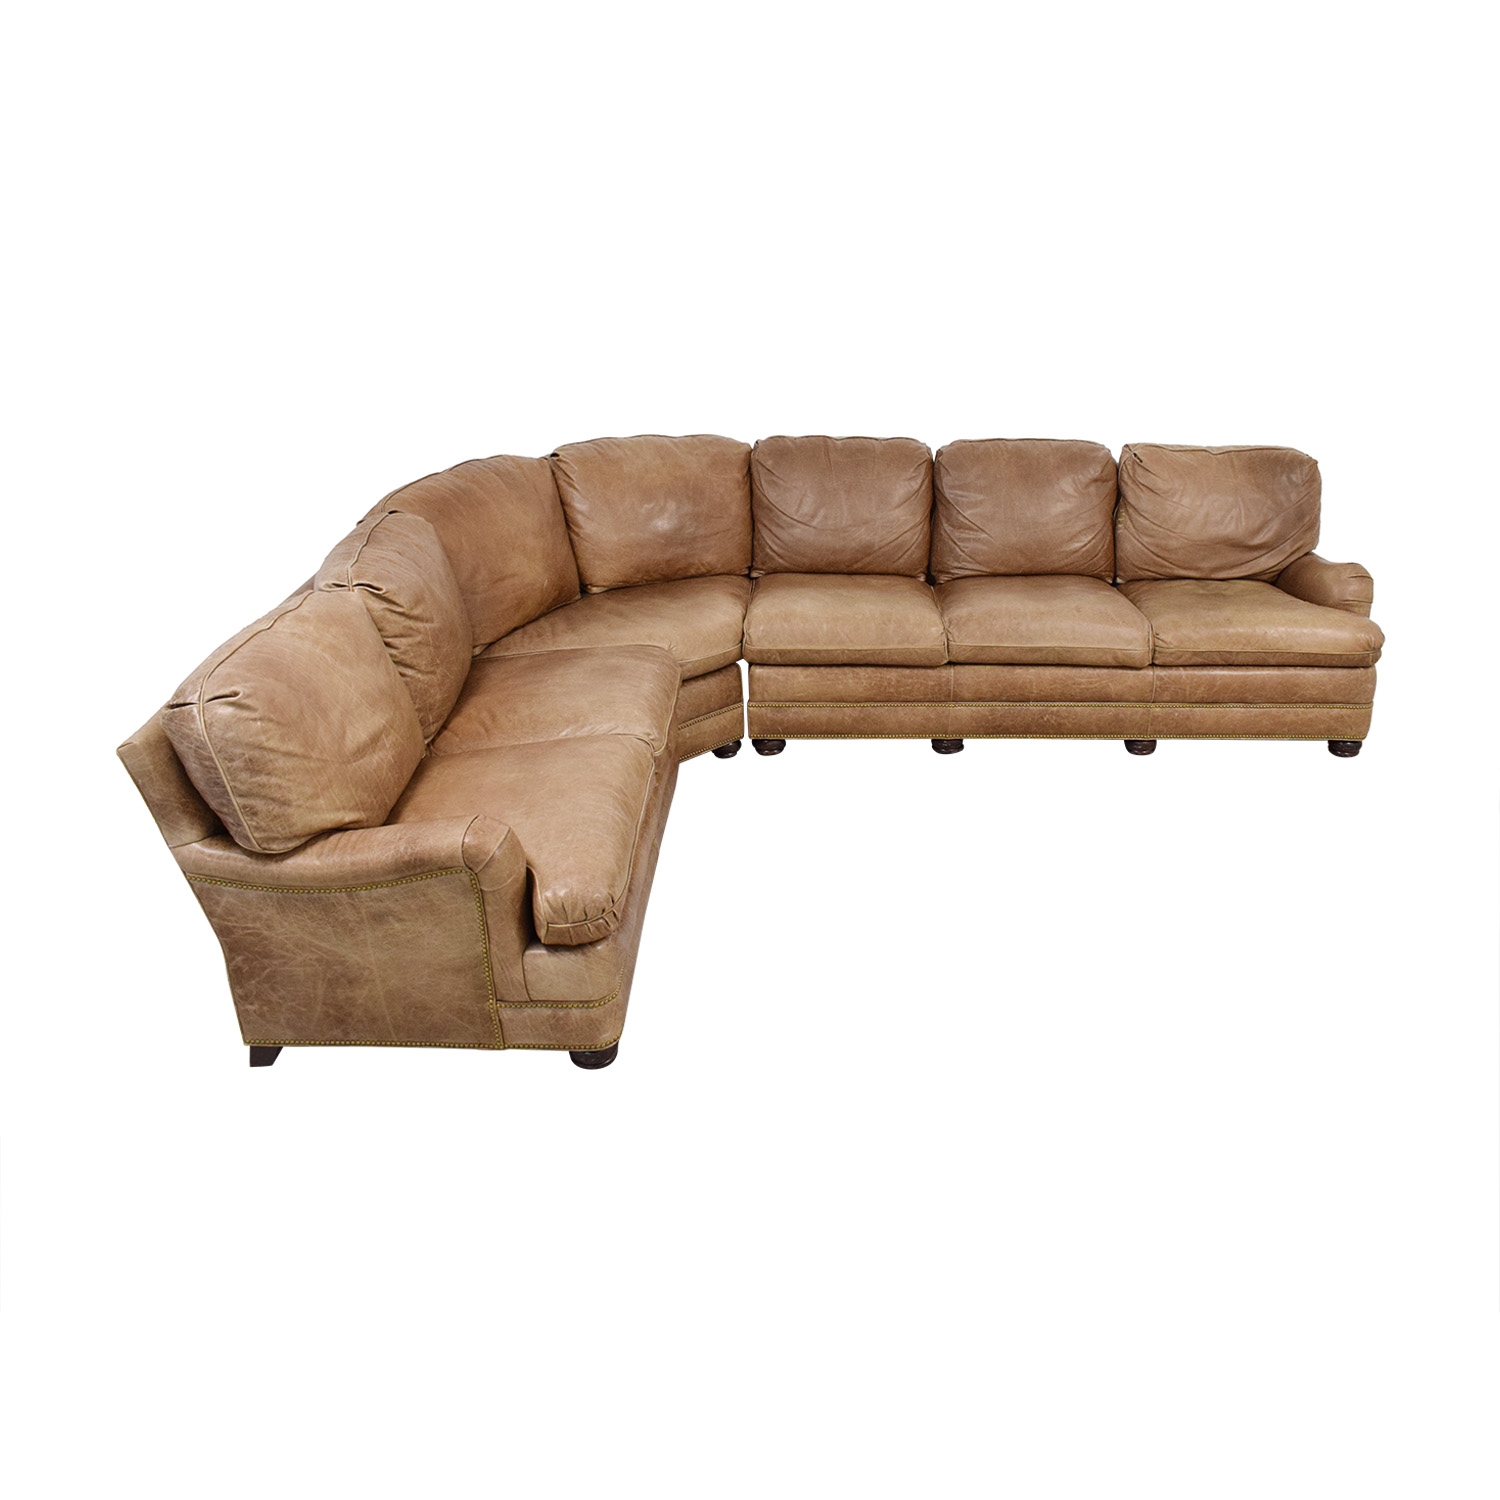 Hancock and Moore Hancock & Moore Leather Sectional Sofa for sale